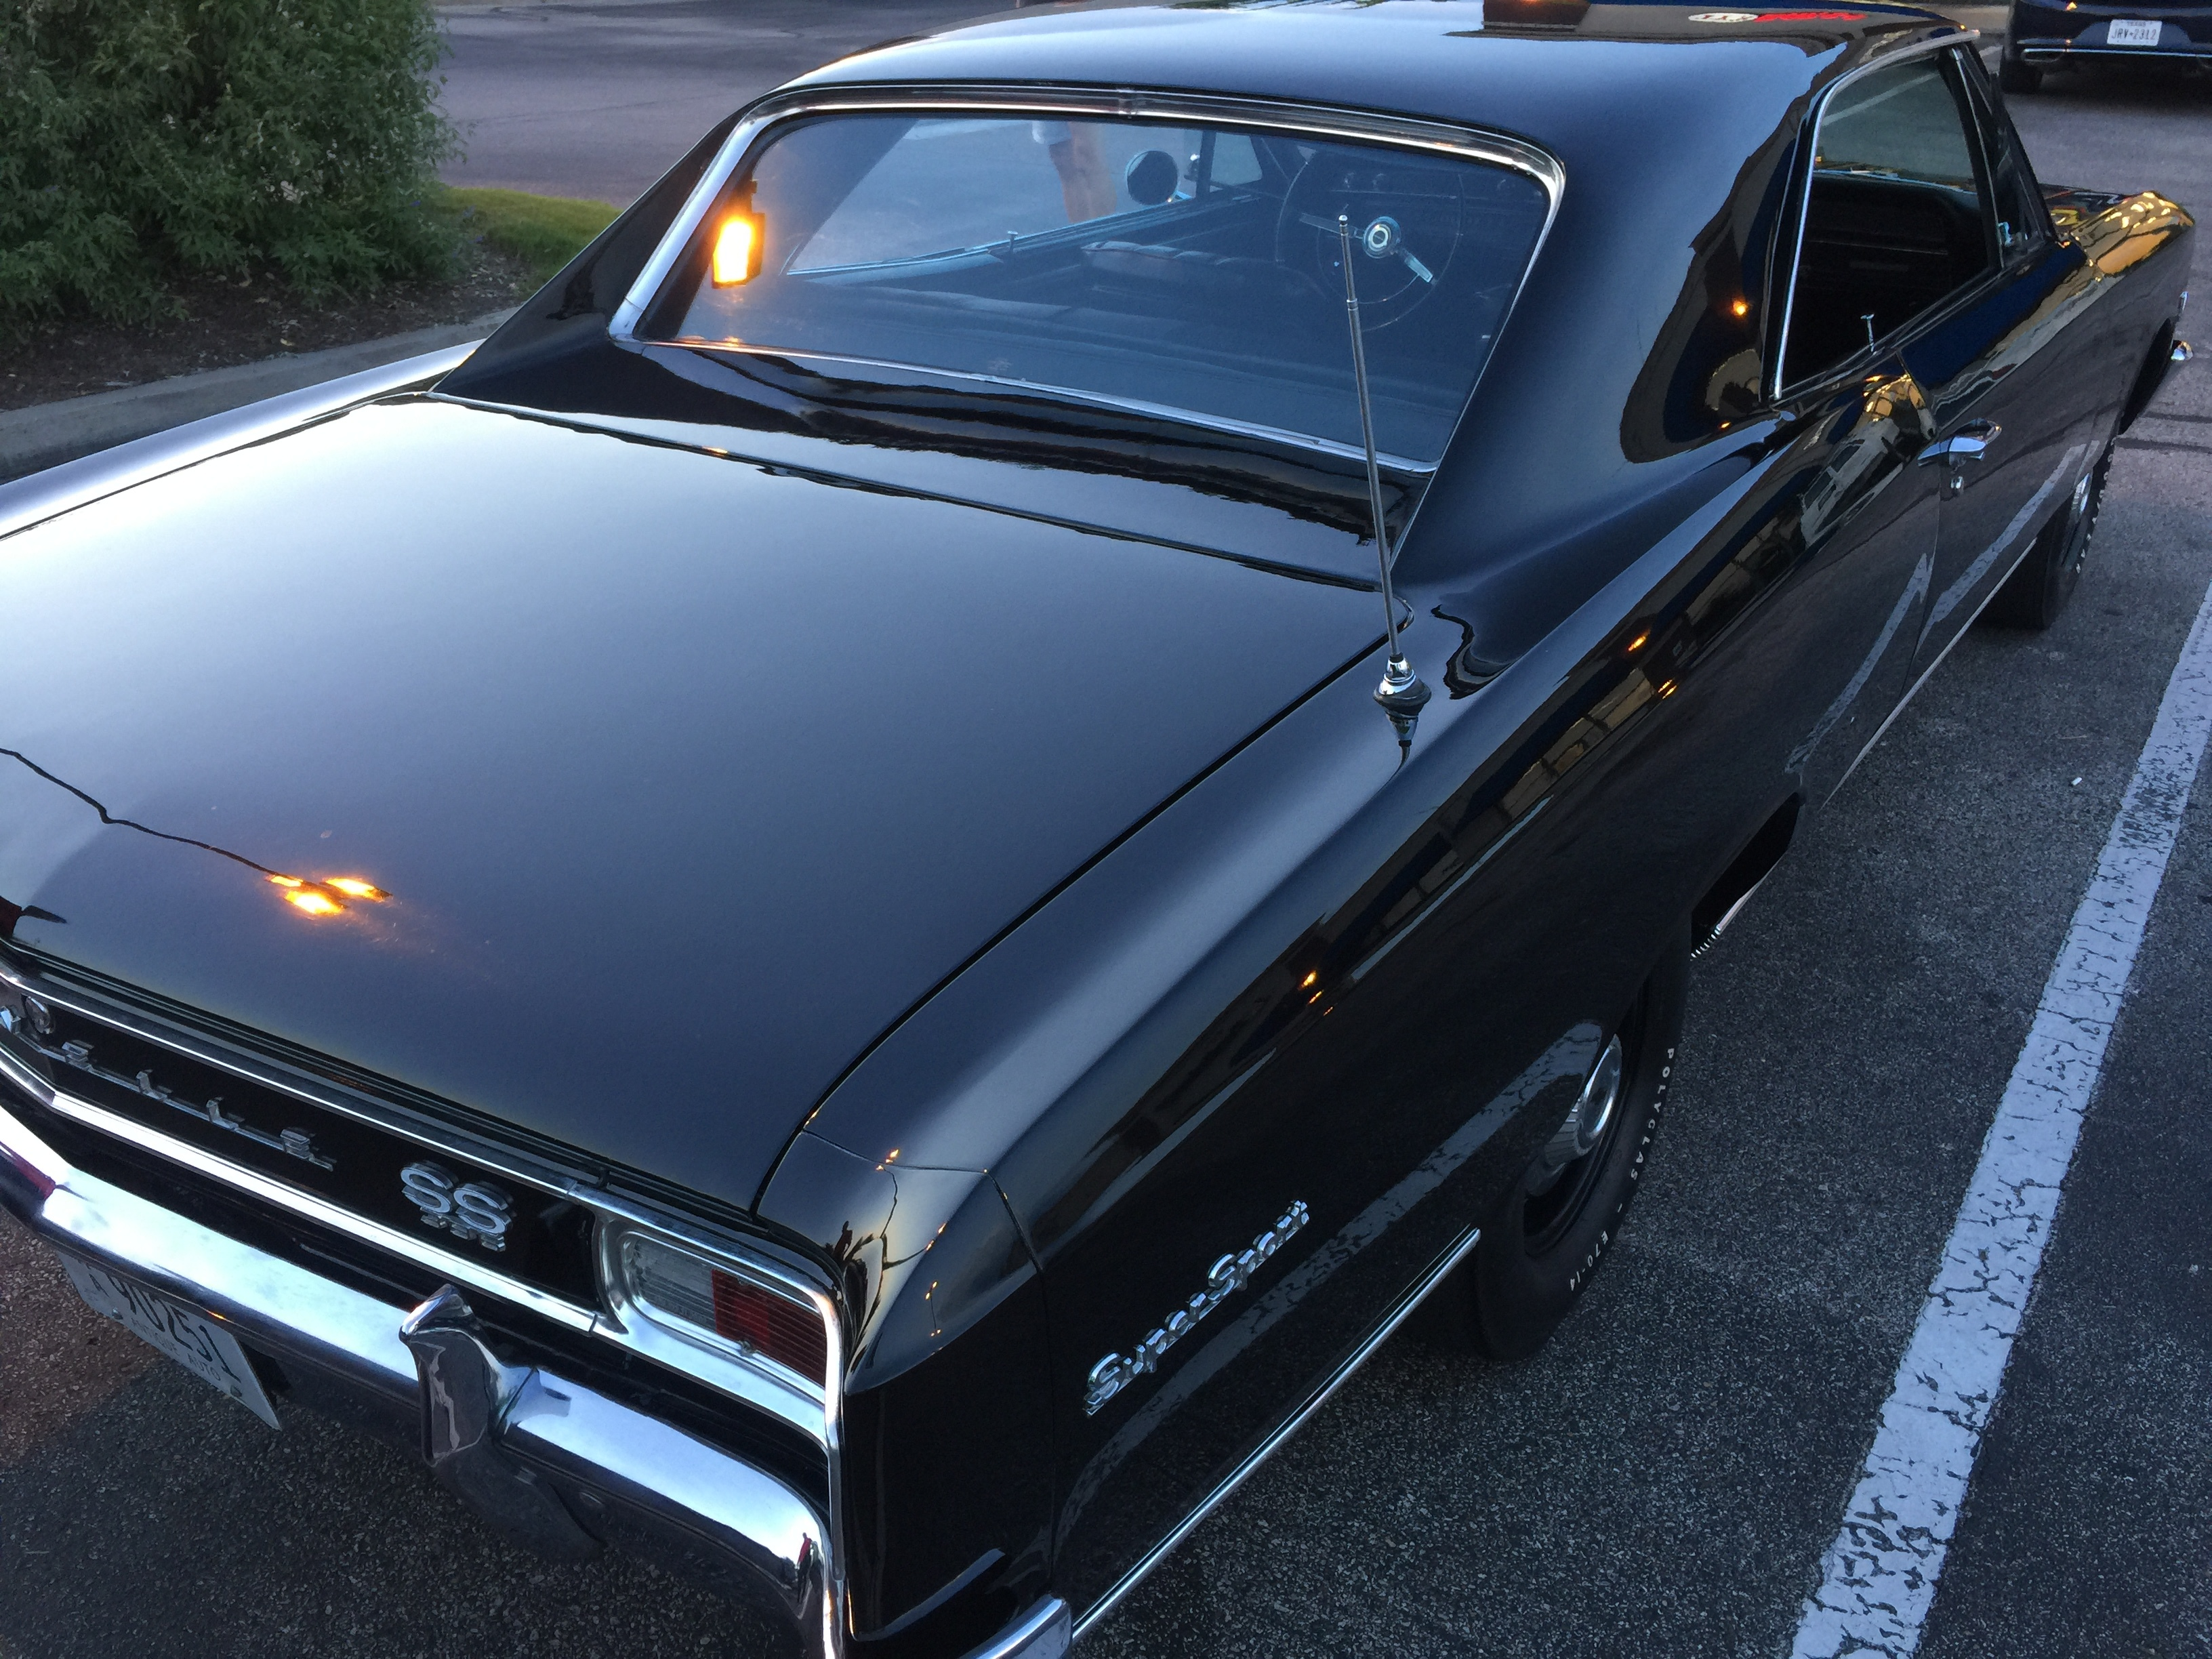 Todays Cool Car Find Is This 1966 Chevrolet Chevelle Ss 396